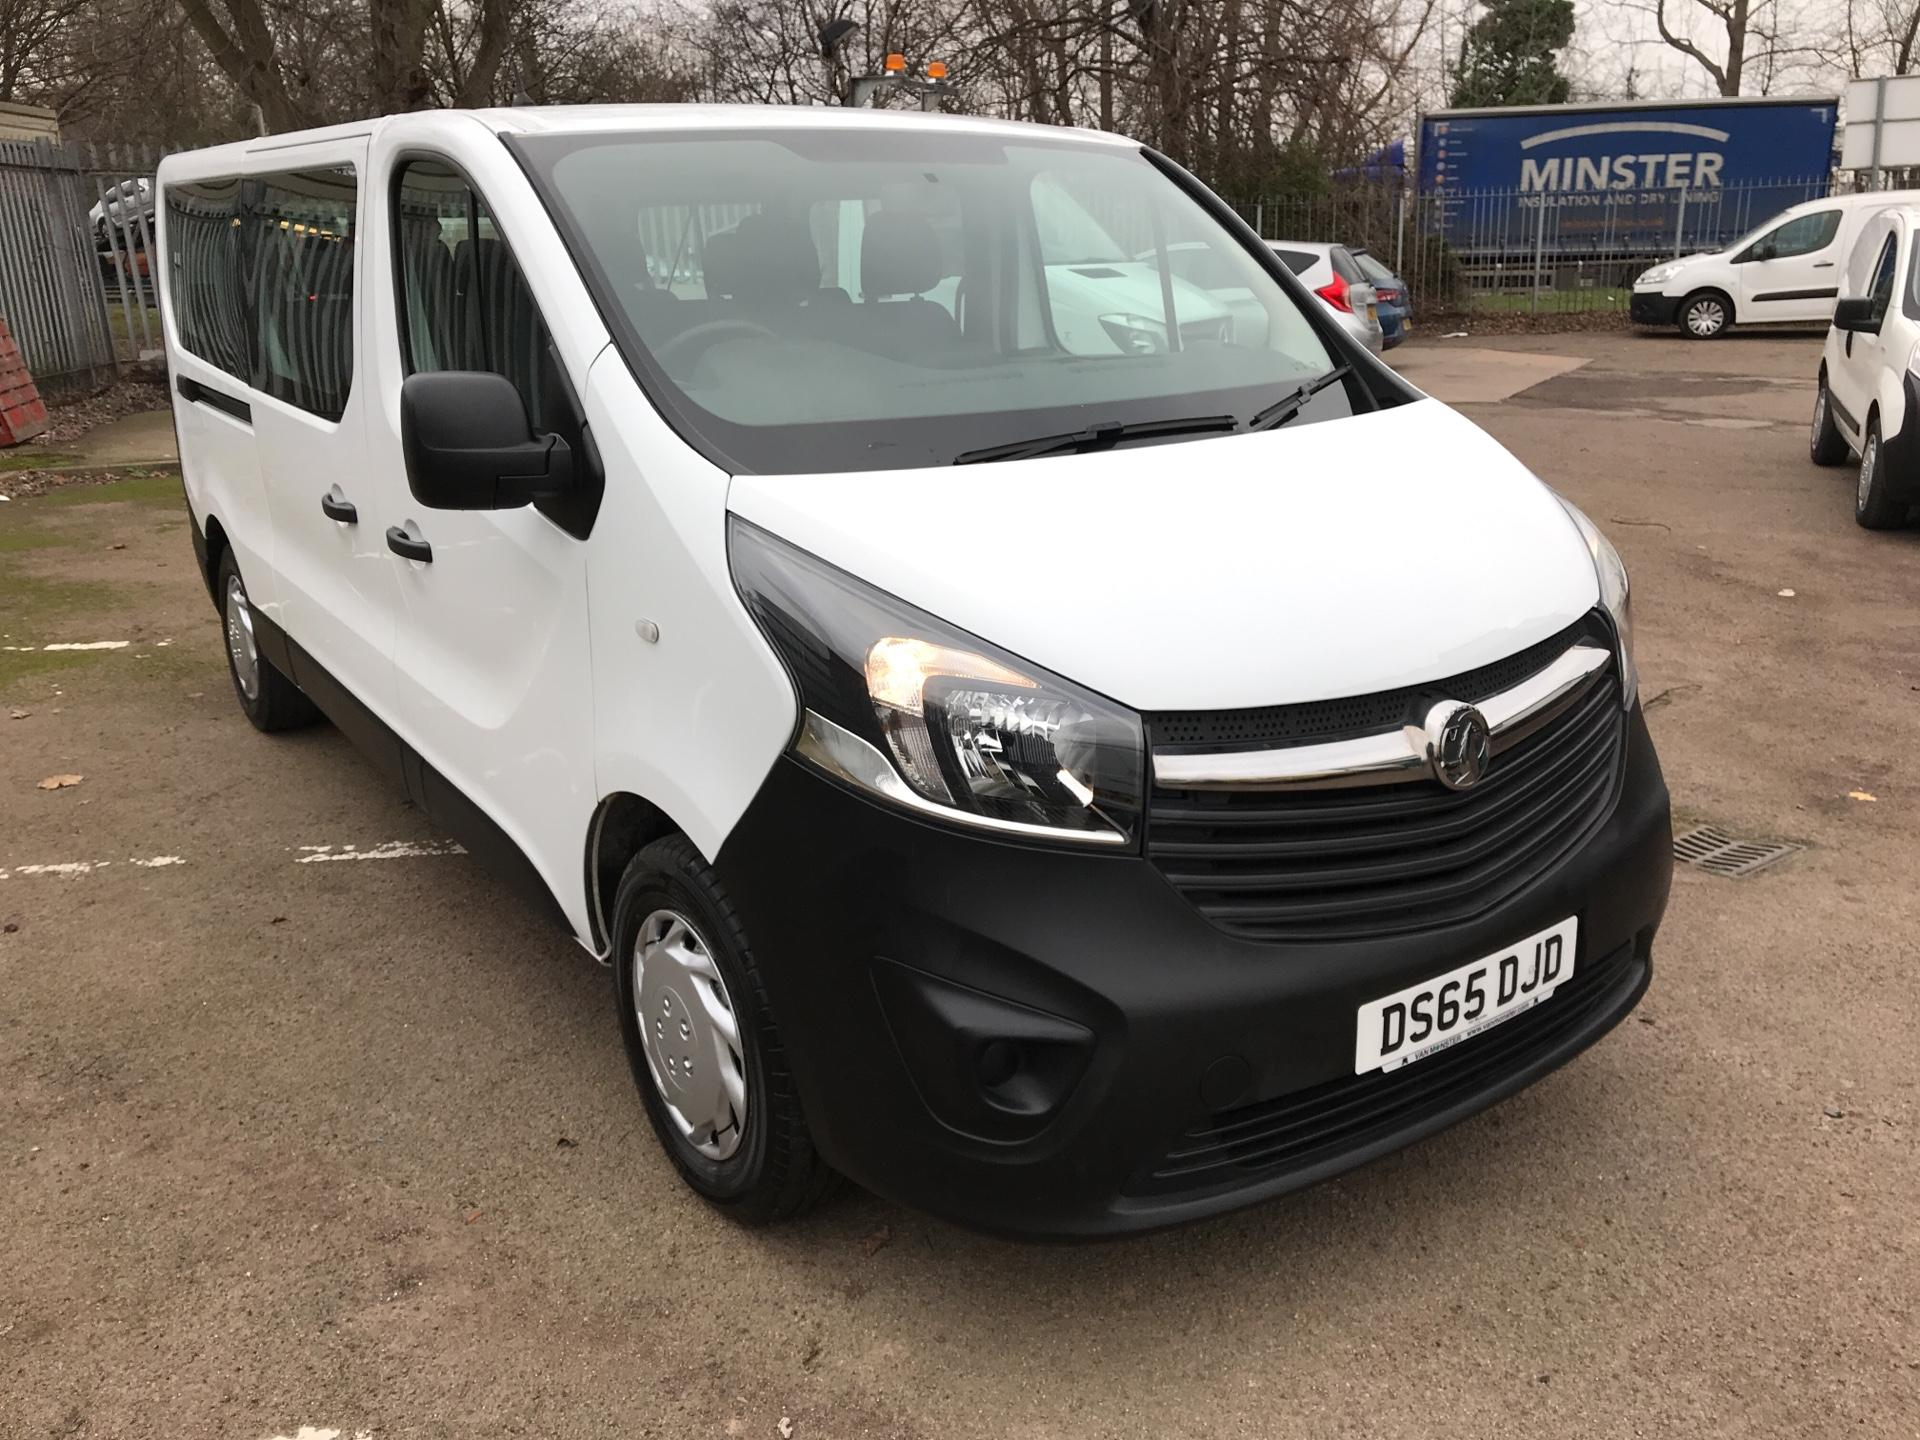 2015 Vauxhall Vivaro  L2 H1 2900 1.6 115PS COMBI 9 SEAT EURO 5 *VALUE RANGE VEHICLE - CONDITION REFLECTED IN PRICE*  (DS65DJD)